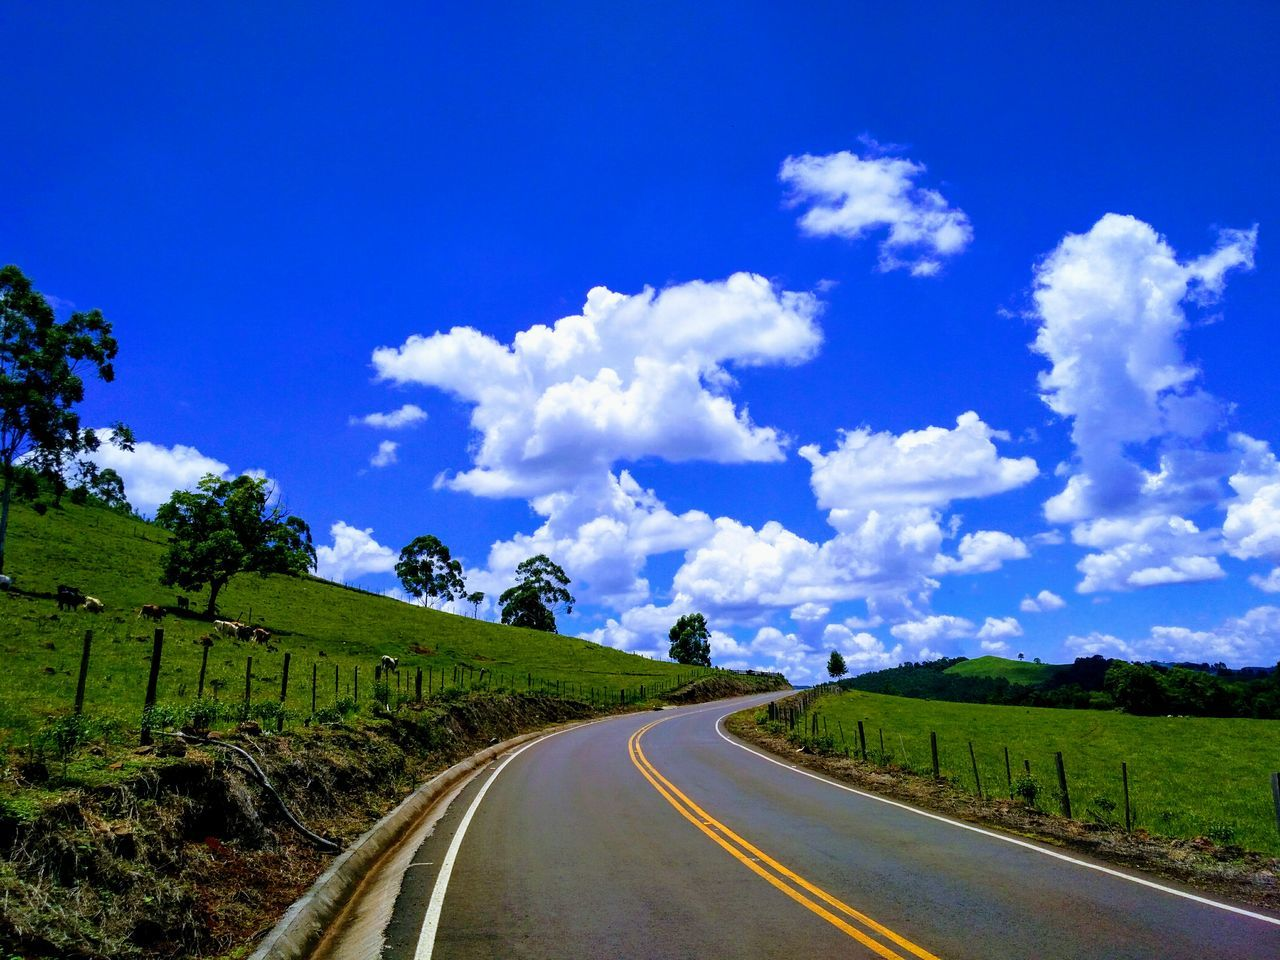 Road Amidst Green Landscape Against Blue Sky